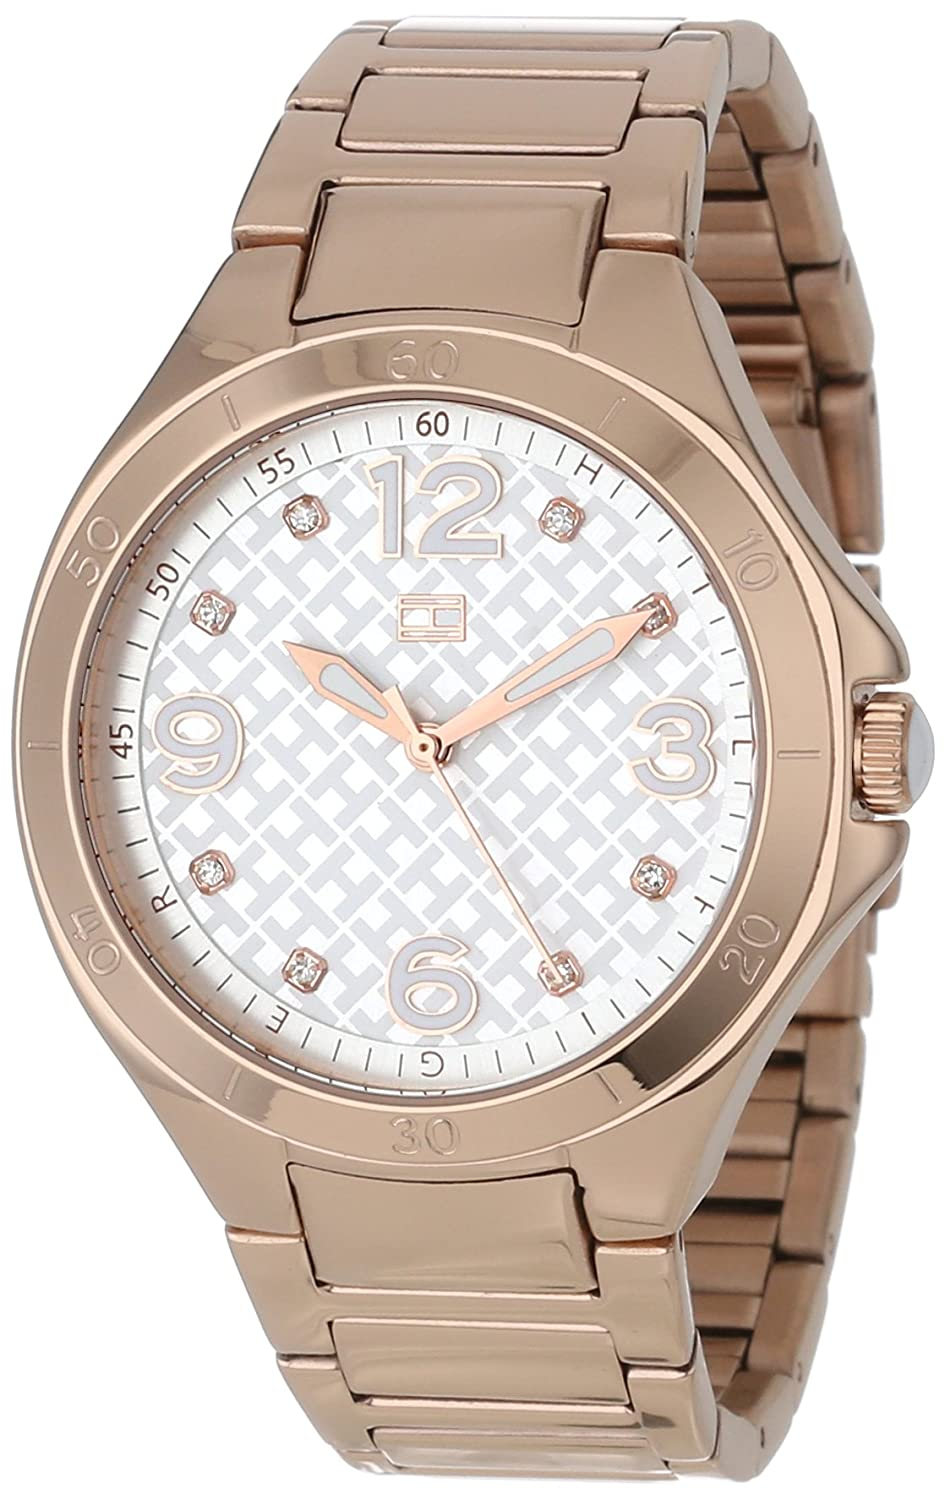 e58d201cc1c4 Tommy Hilfiger Women s 1781316 Rose-Gold Stainless-Steel Quartz Watch with  Silver Dial  Tommy Hilfiger  Amazon.co.uk  Watches